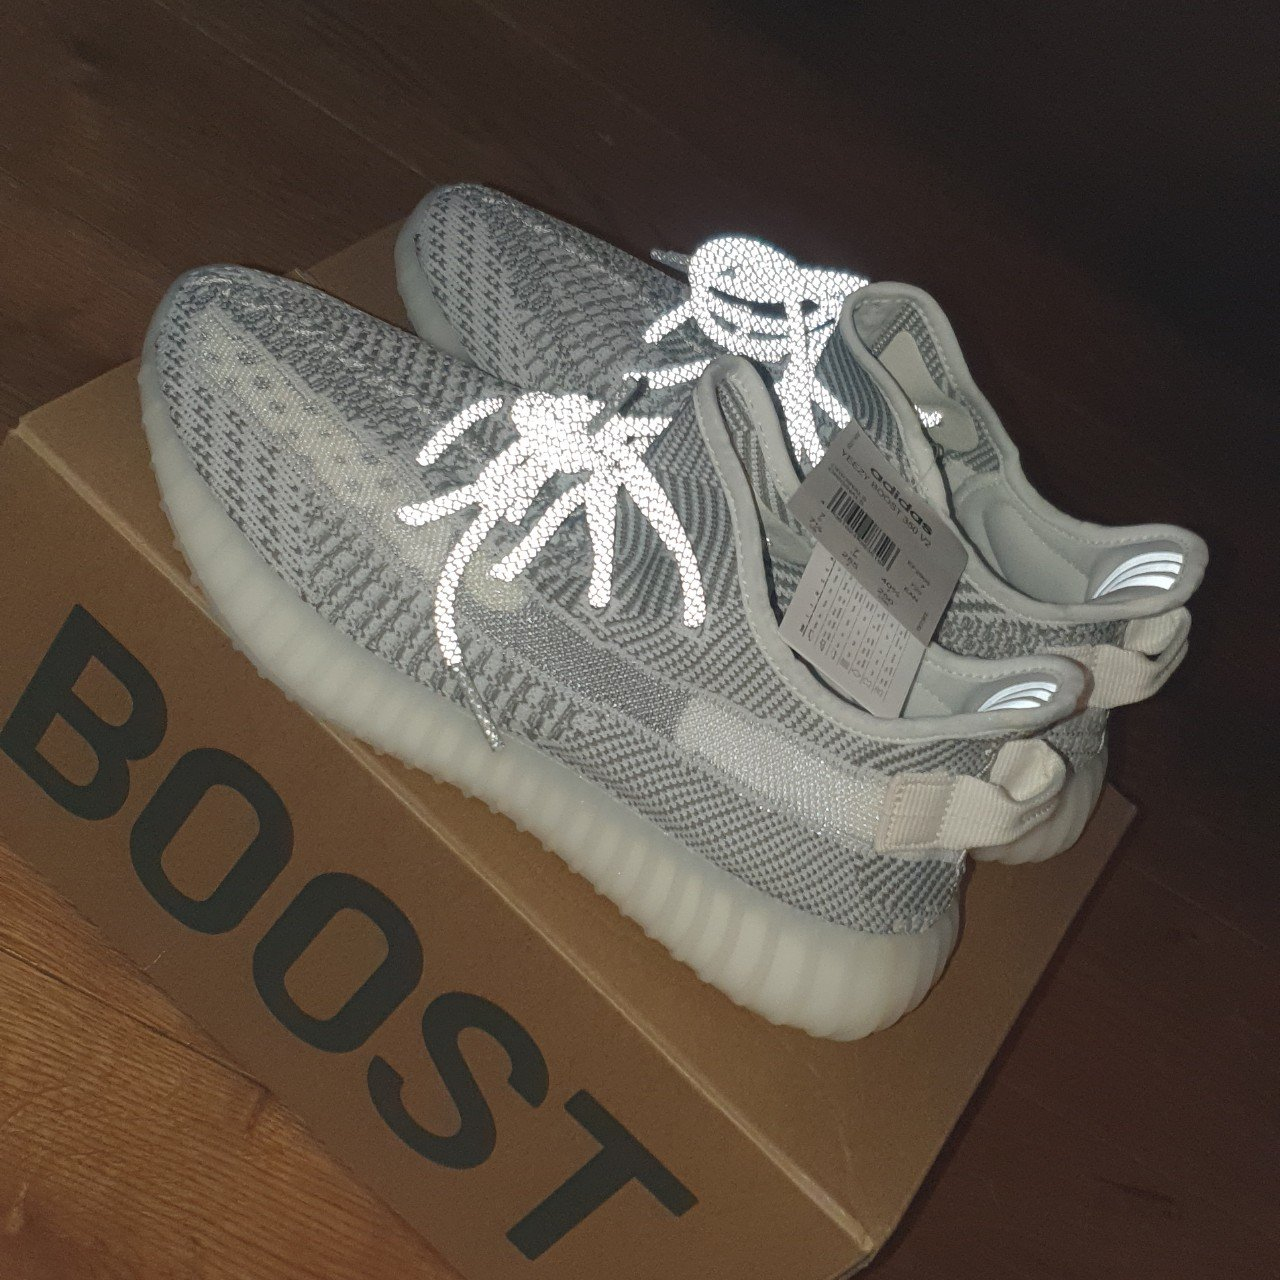 31b7358b321 UK 7 Yeezy statics (non refective) Brand new with tags